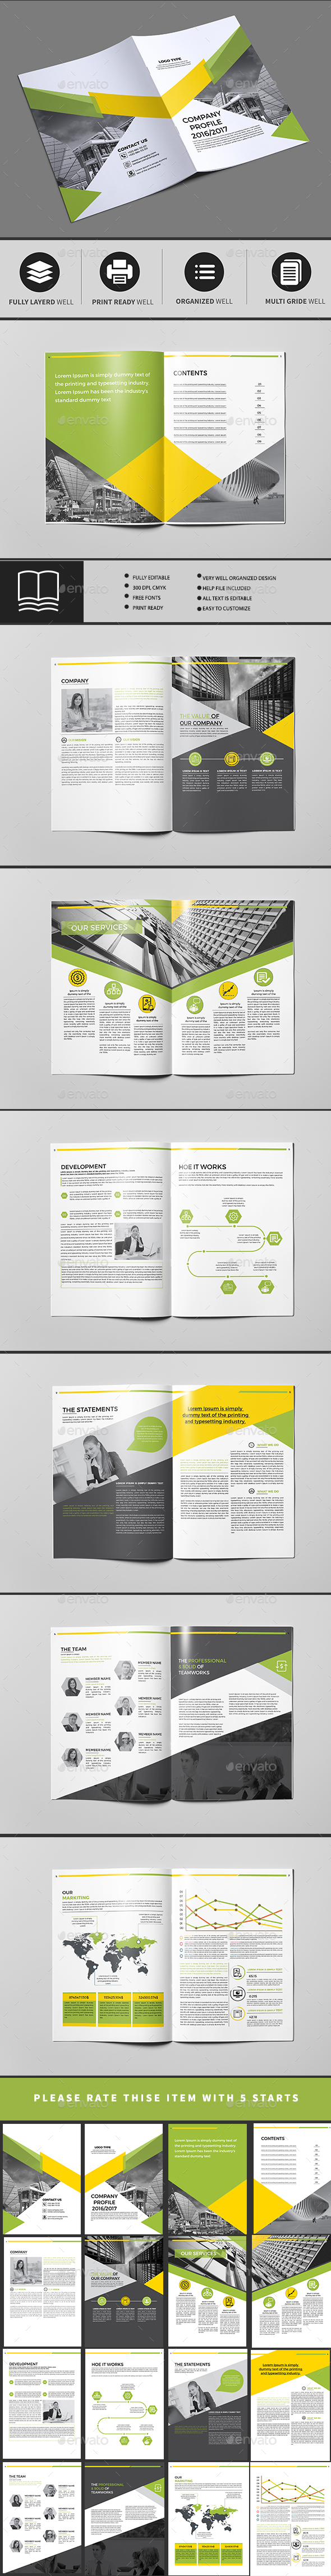 Company Profile A4 16 Pages — InDesign INDD #21x29.7 #showcase ...